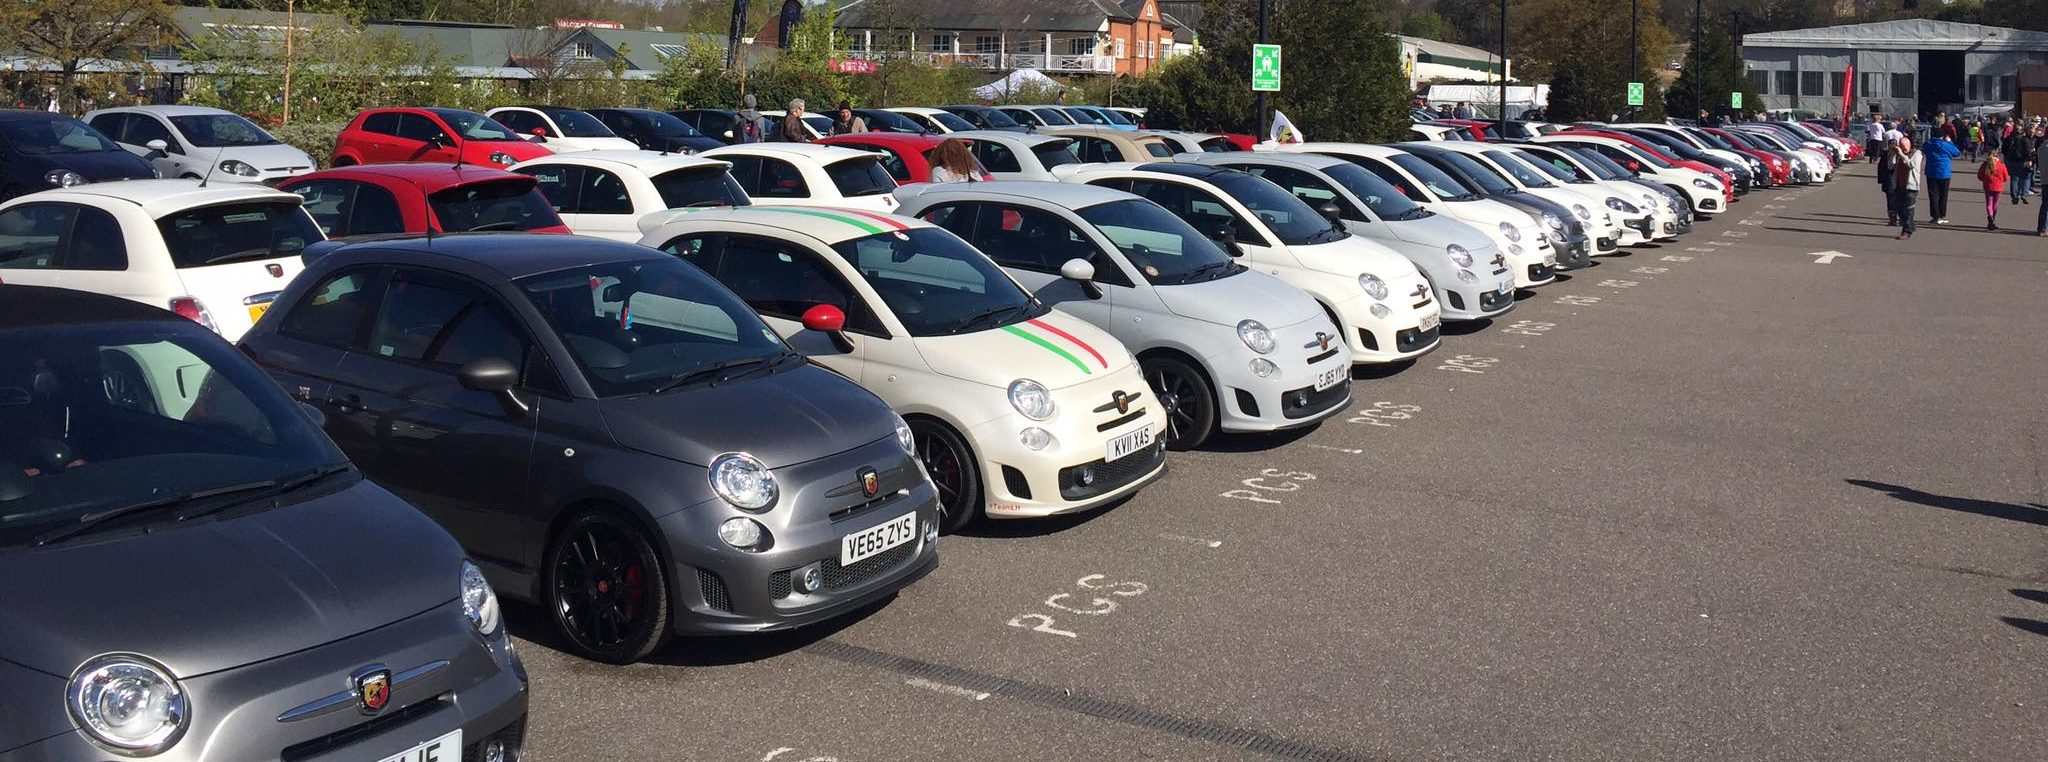 Abarth UK Summer Meeting - Coventry Transport Museum